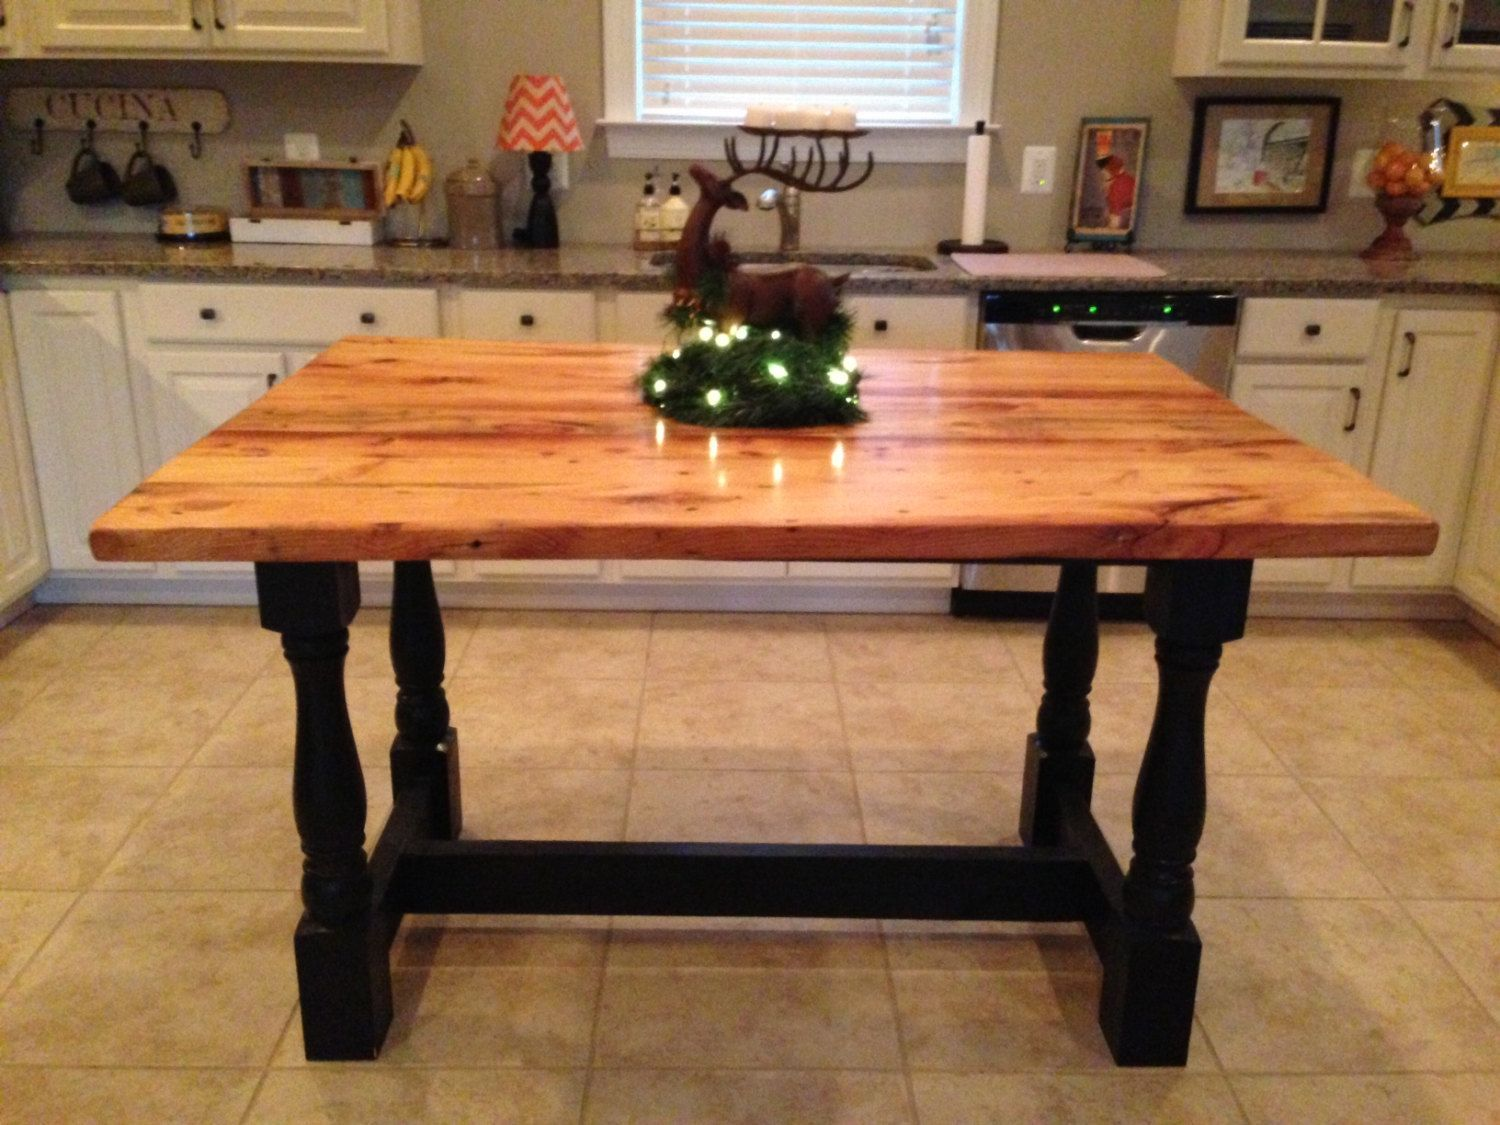 Harvest style kitchen island from reclaimed hardwood with turned